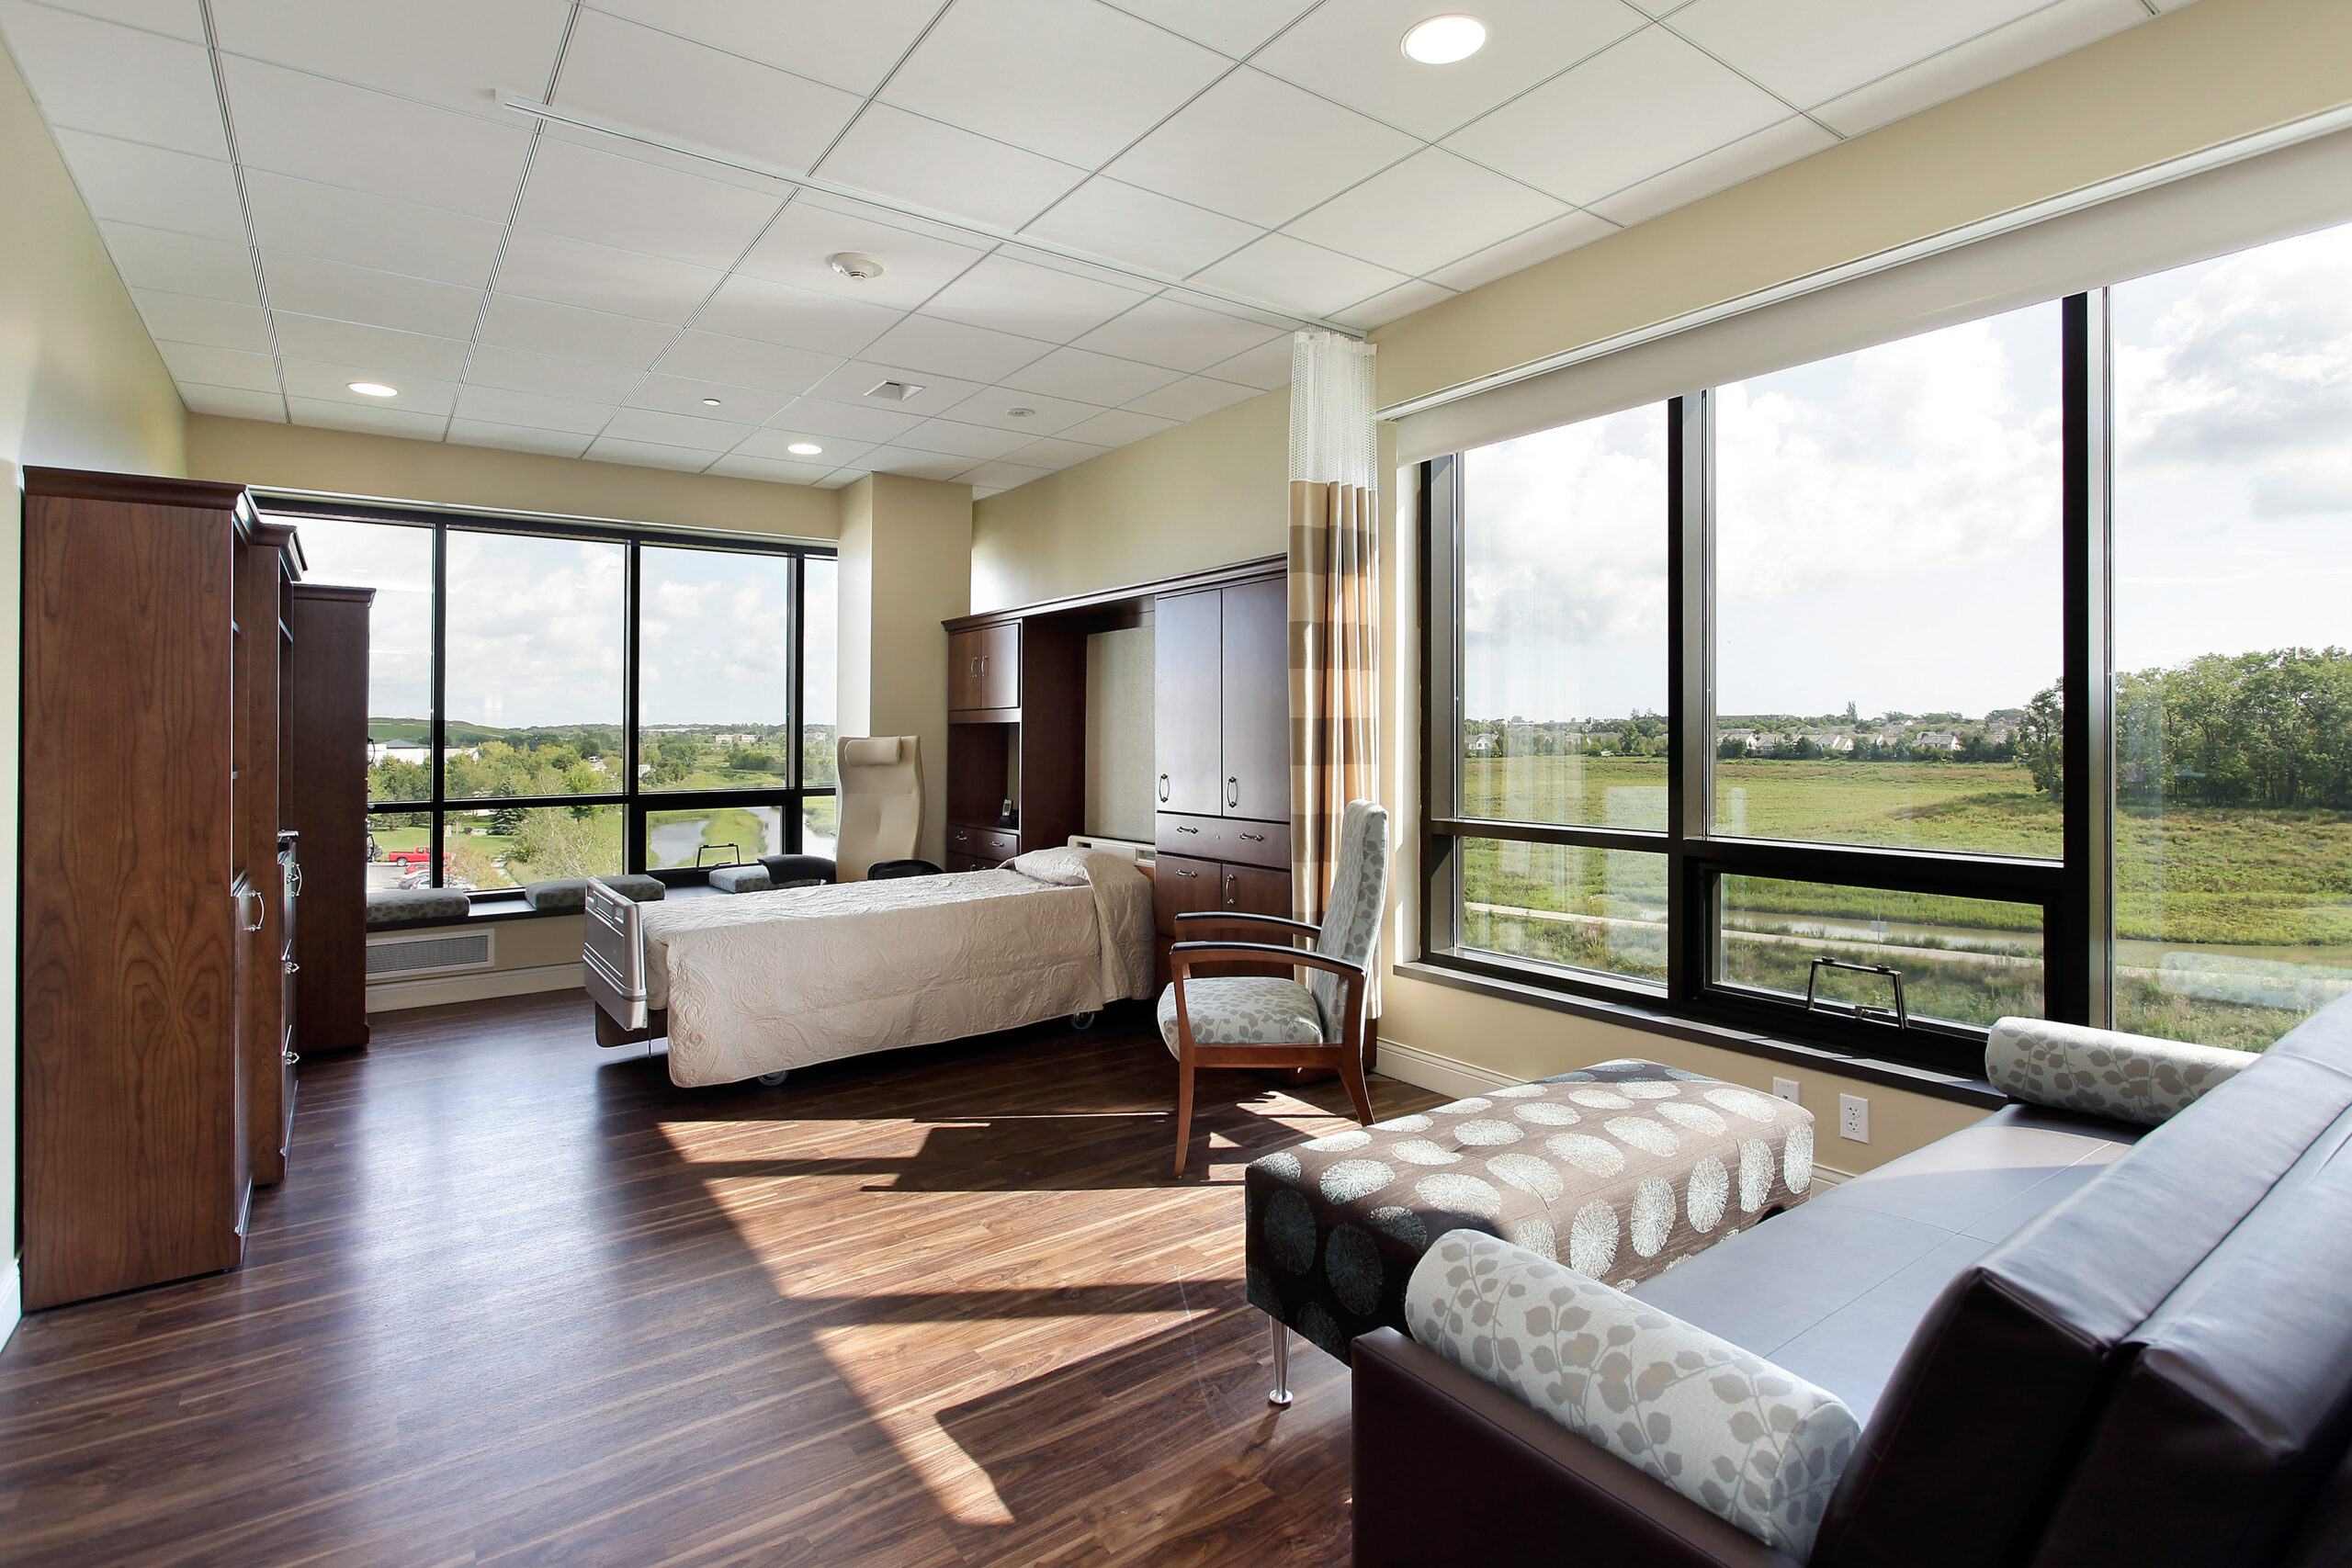 Patient or tenant room, with nature views, JourneyCare.